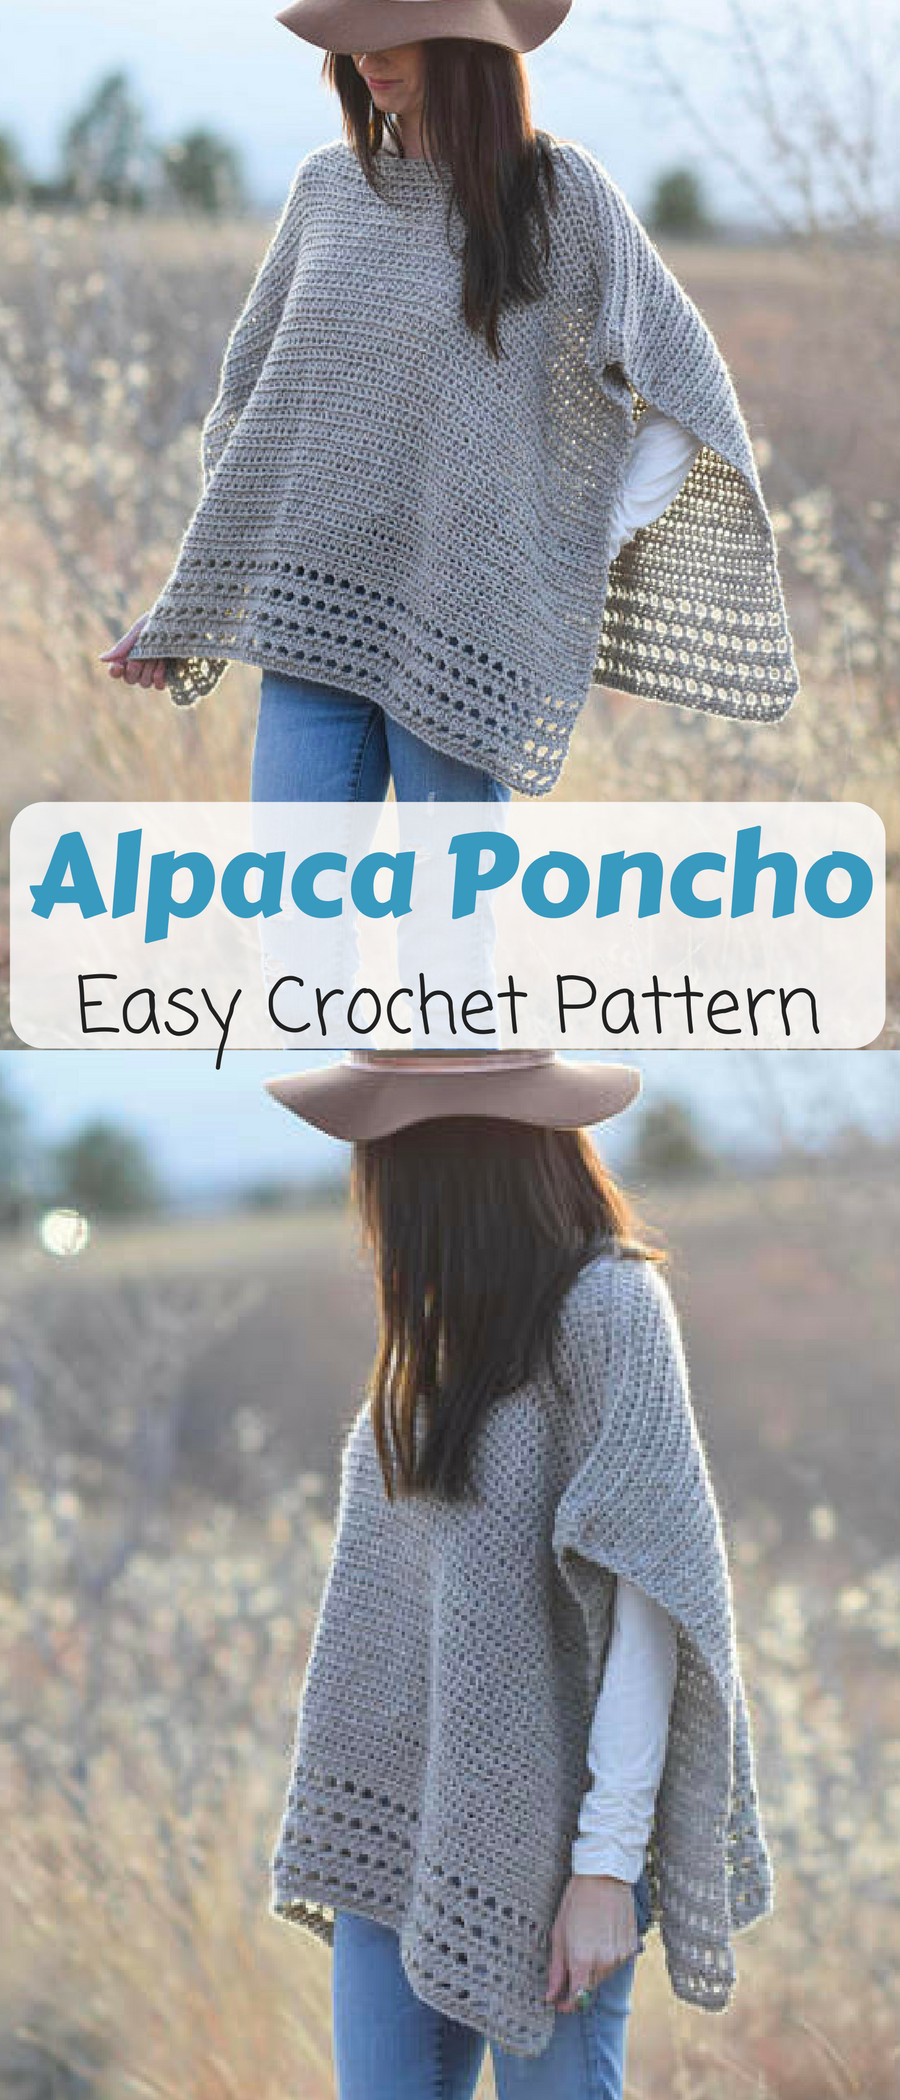 Alpaca Easy Crocheted Poncho Pattern, I am going to make one for me ...